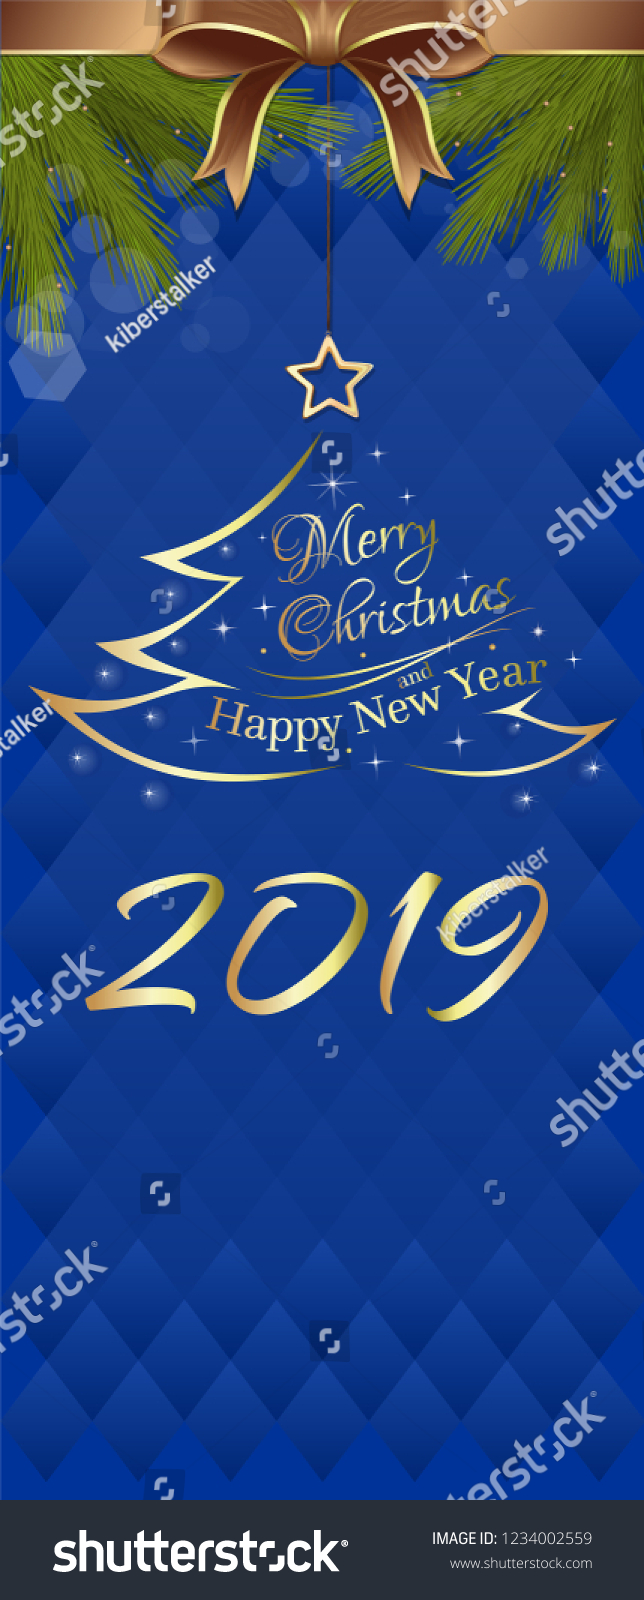 blue vertical banner for new year 2019 merry christmas and happy new year vector